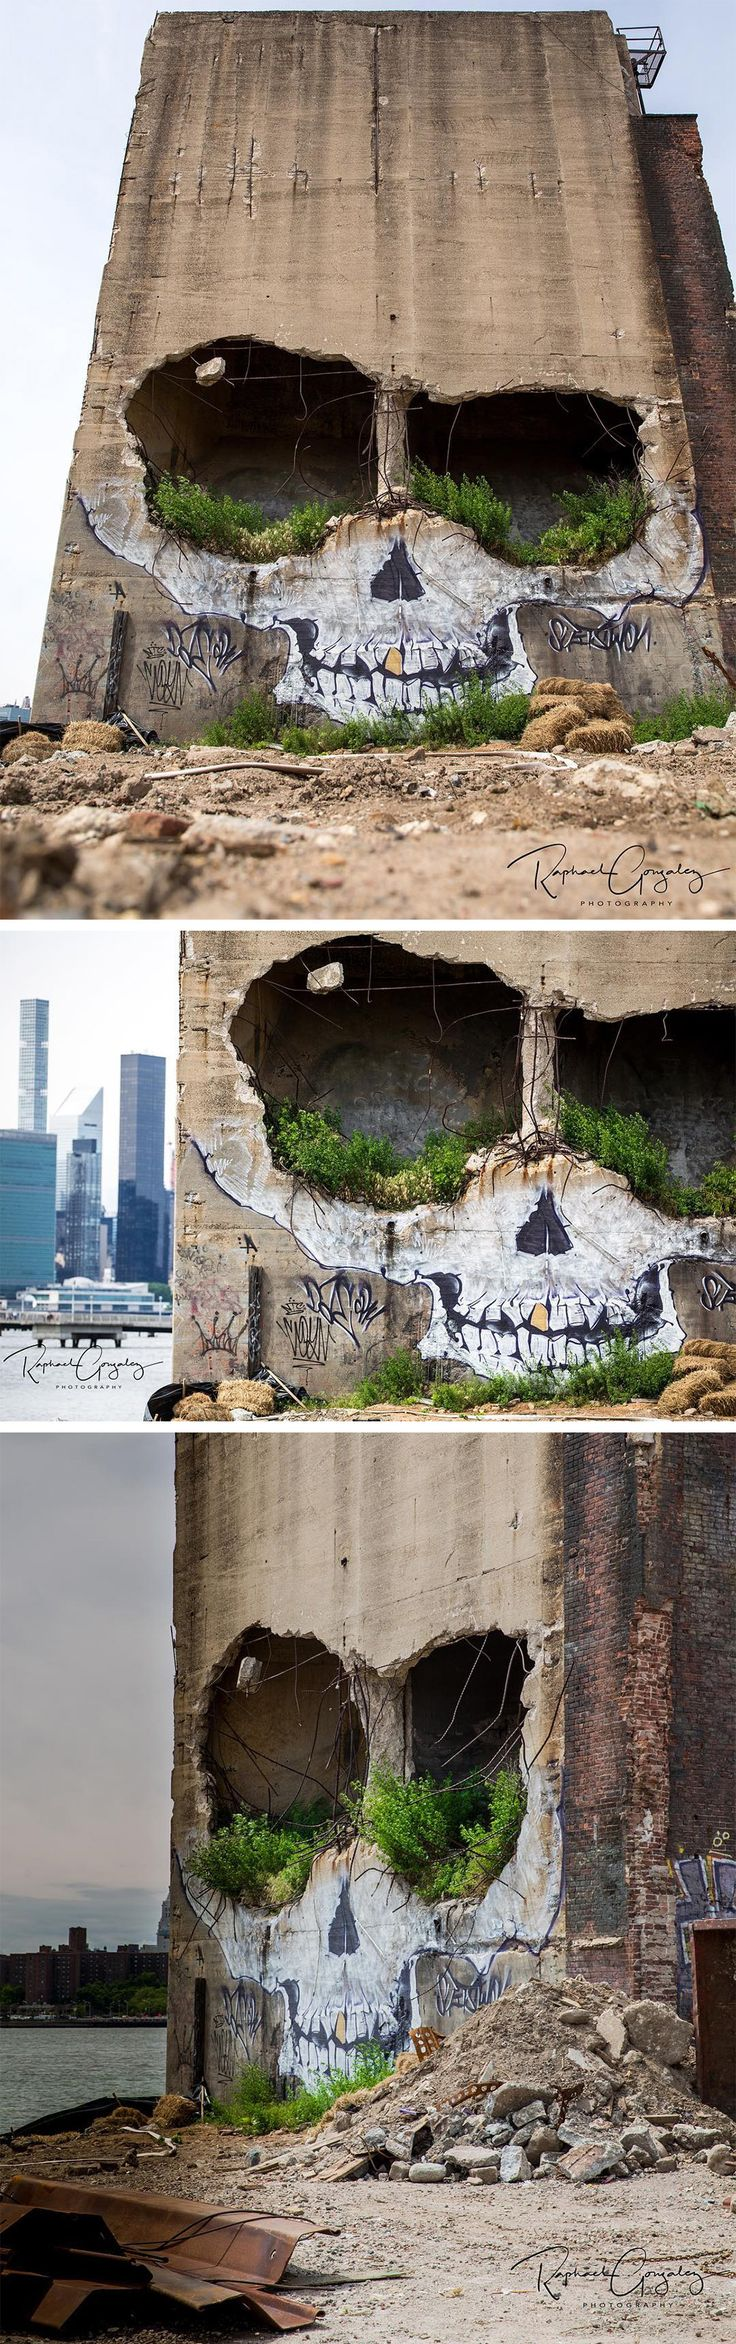 A Crumbling Building in Greenpoint Now Features a Ghoulish Skull by Suitswon